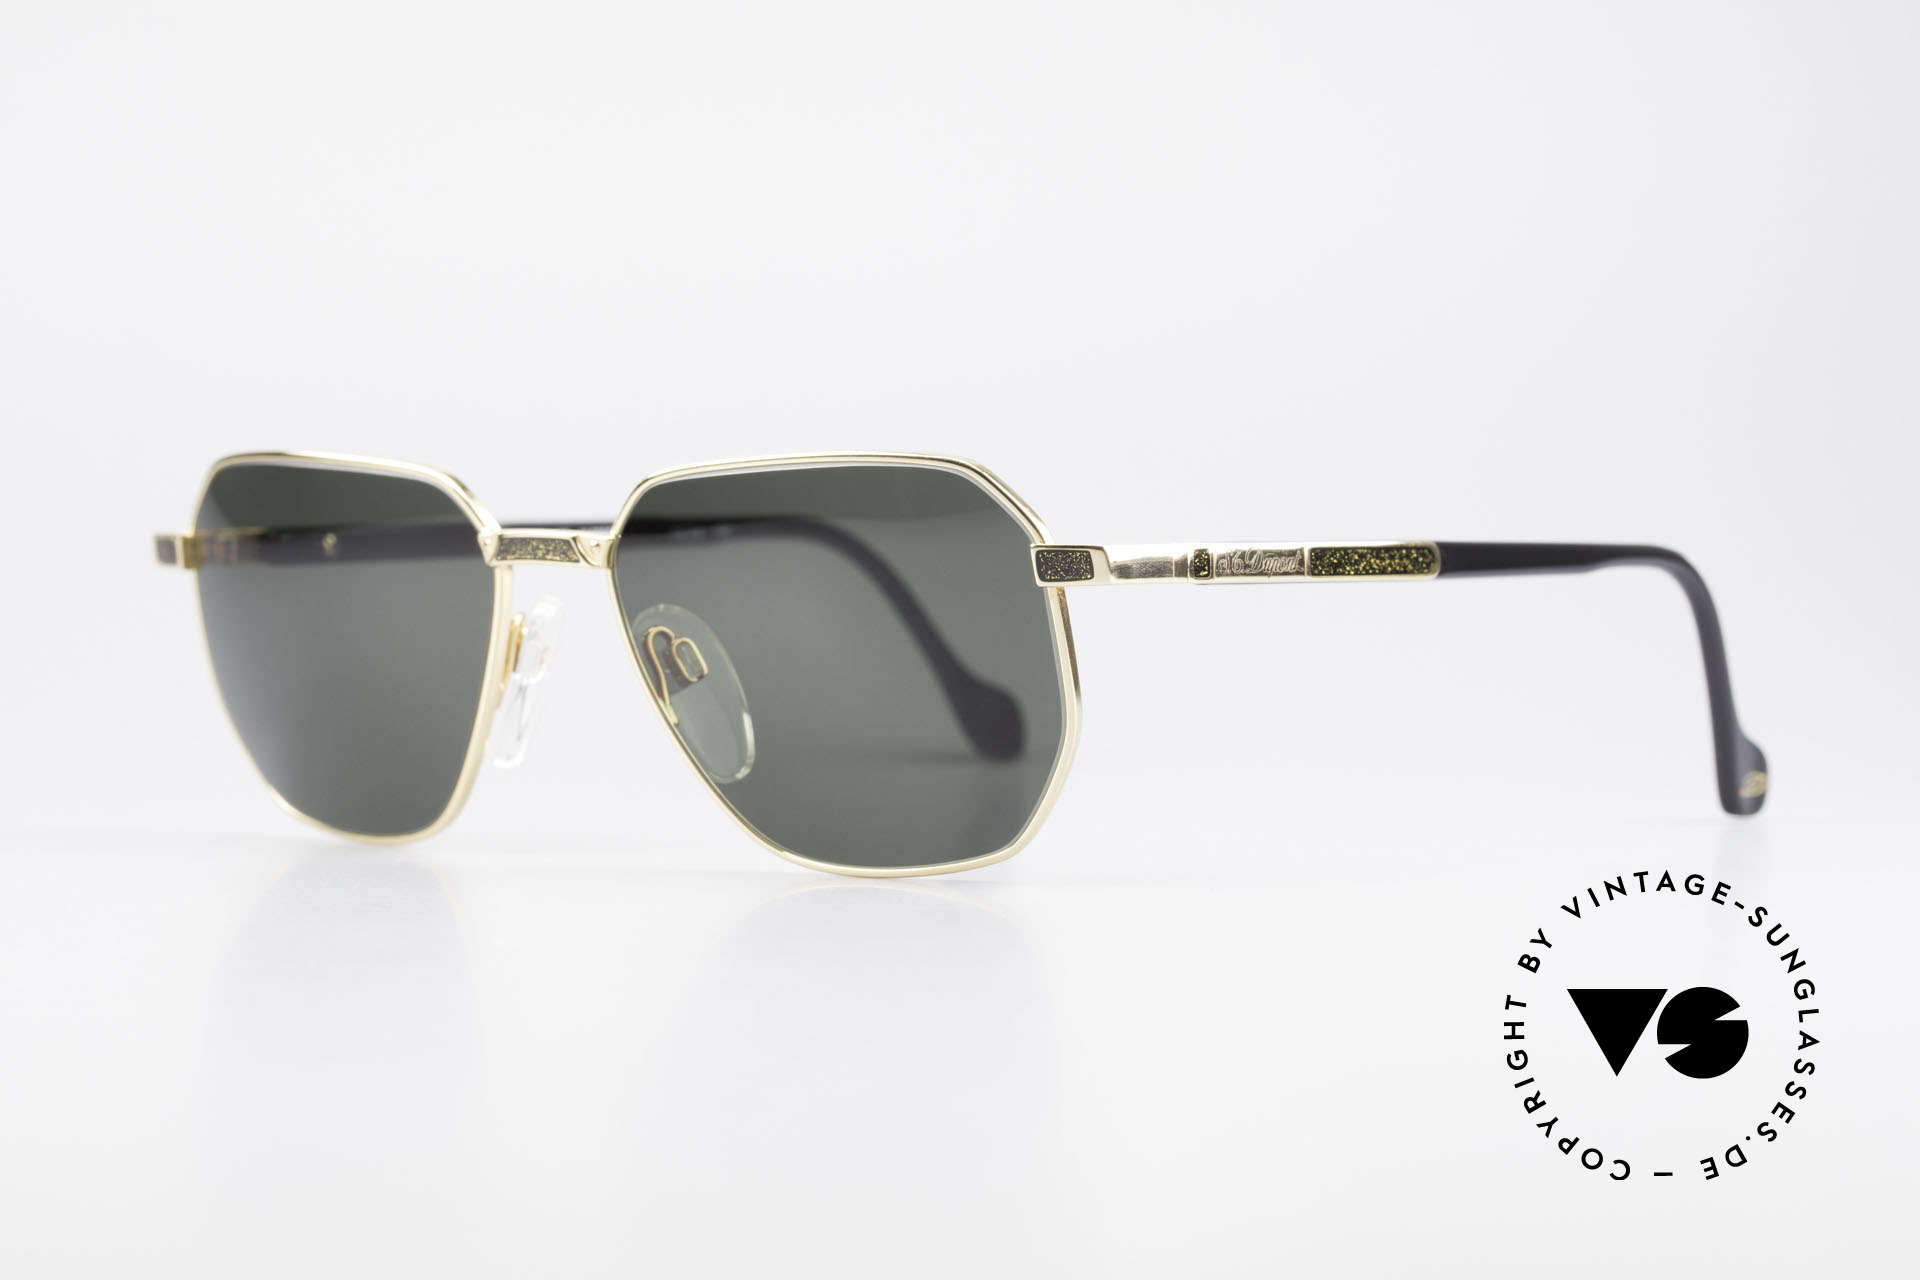 S.T. Dupont D006 Luxury Sunglasses Vintage, very noble & 1st class wearing comfort, U must feel it!, Made for Men